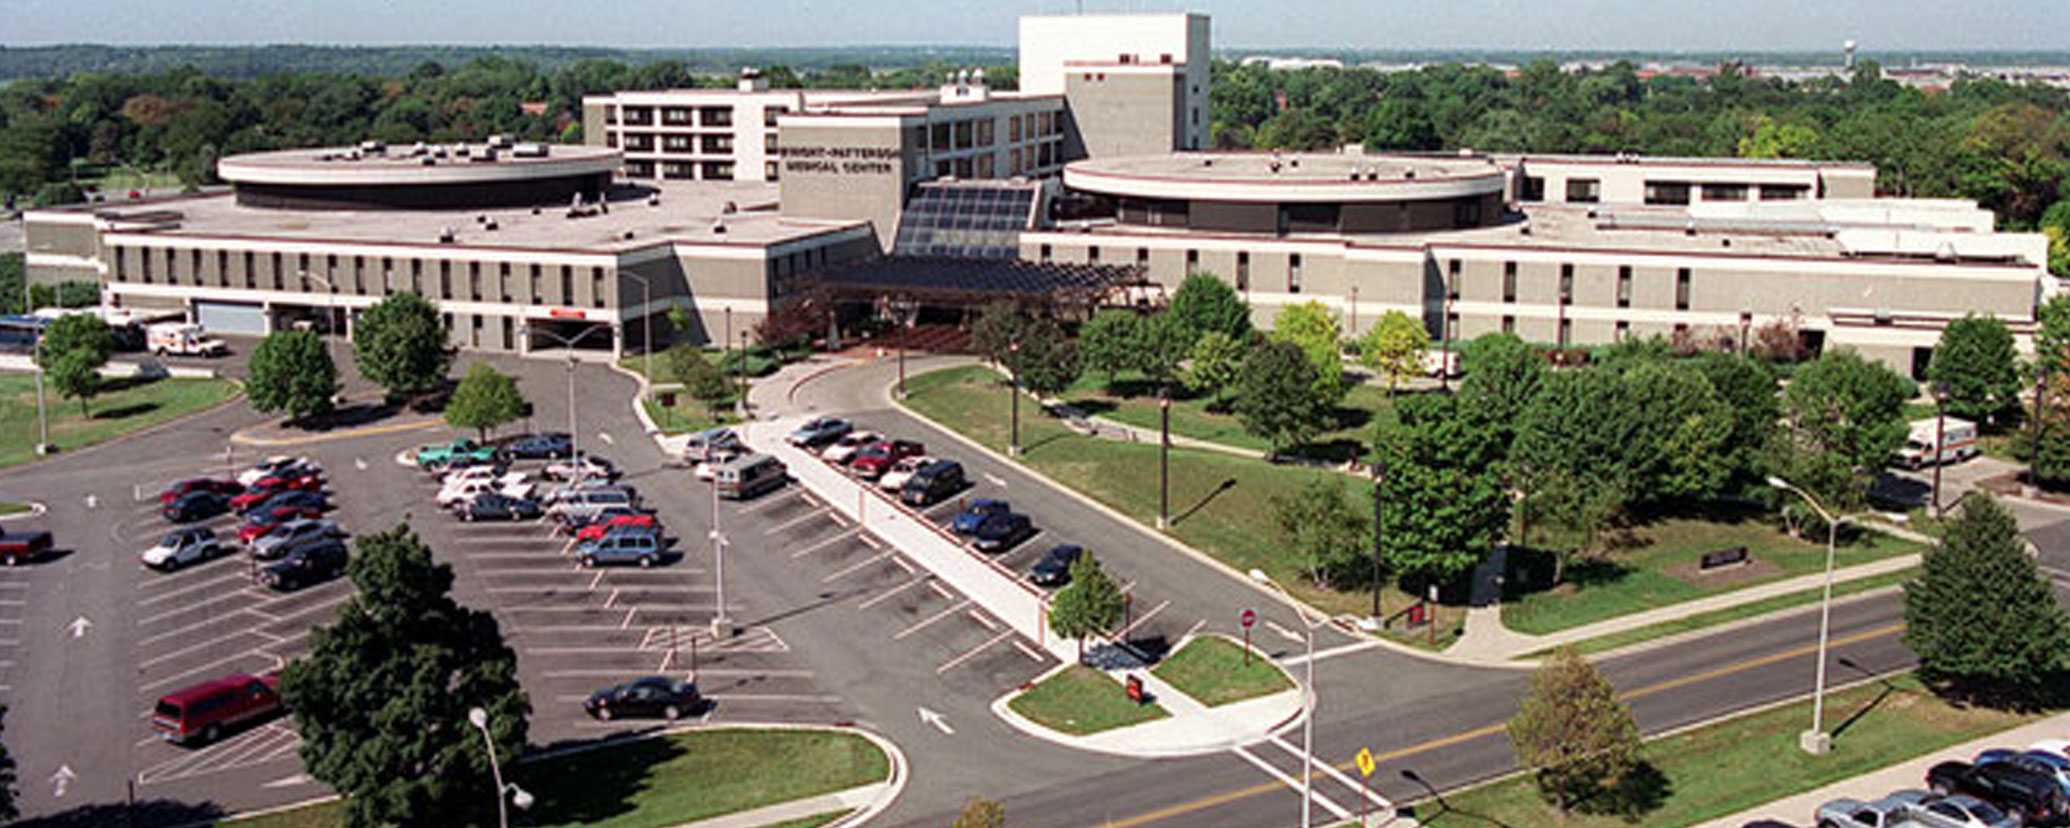 Medical Center Wright-Patterson | Caddell Construction